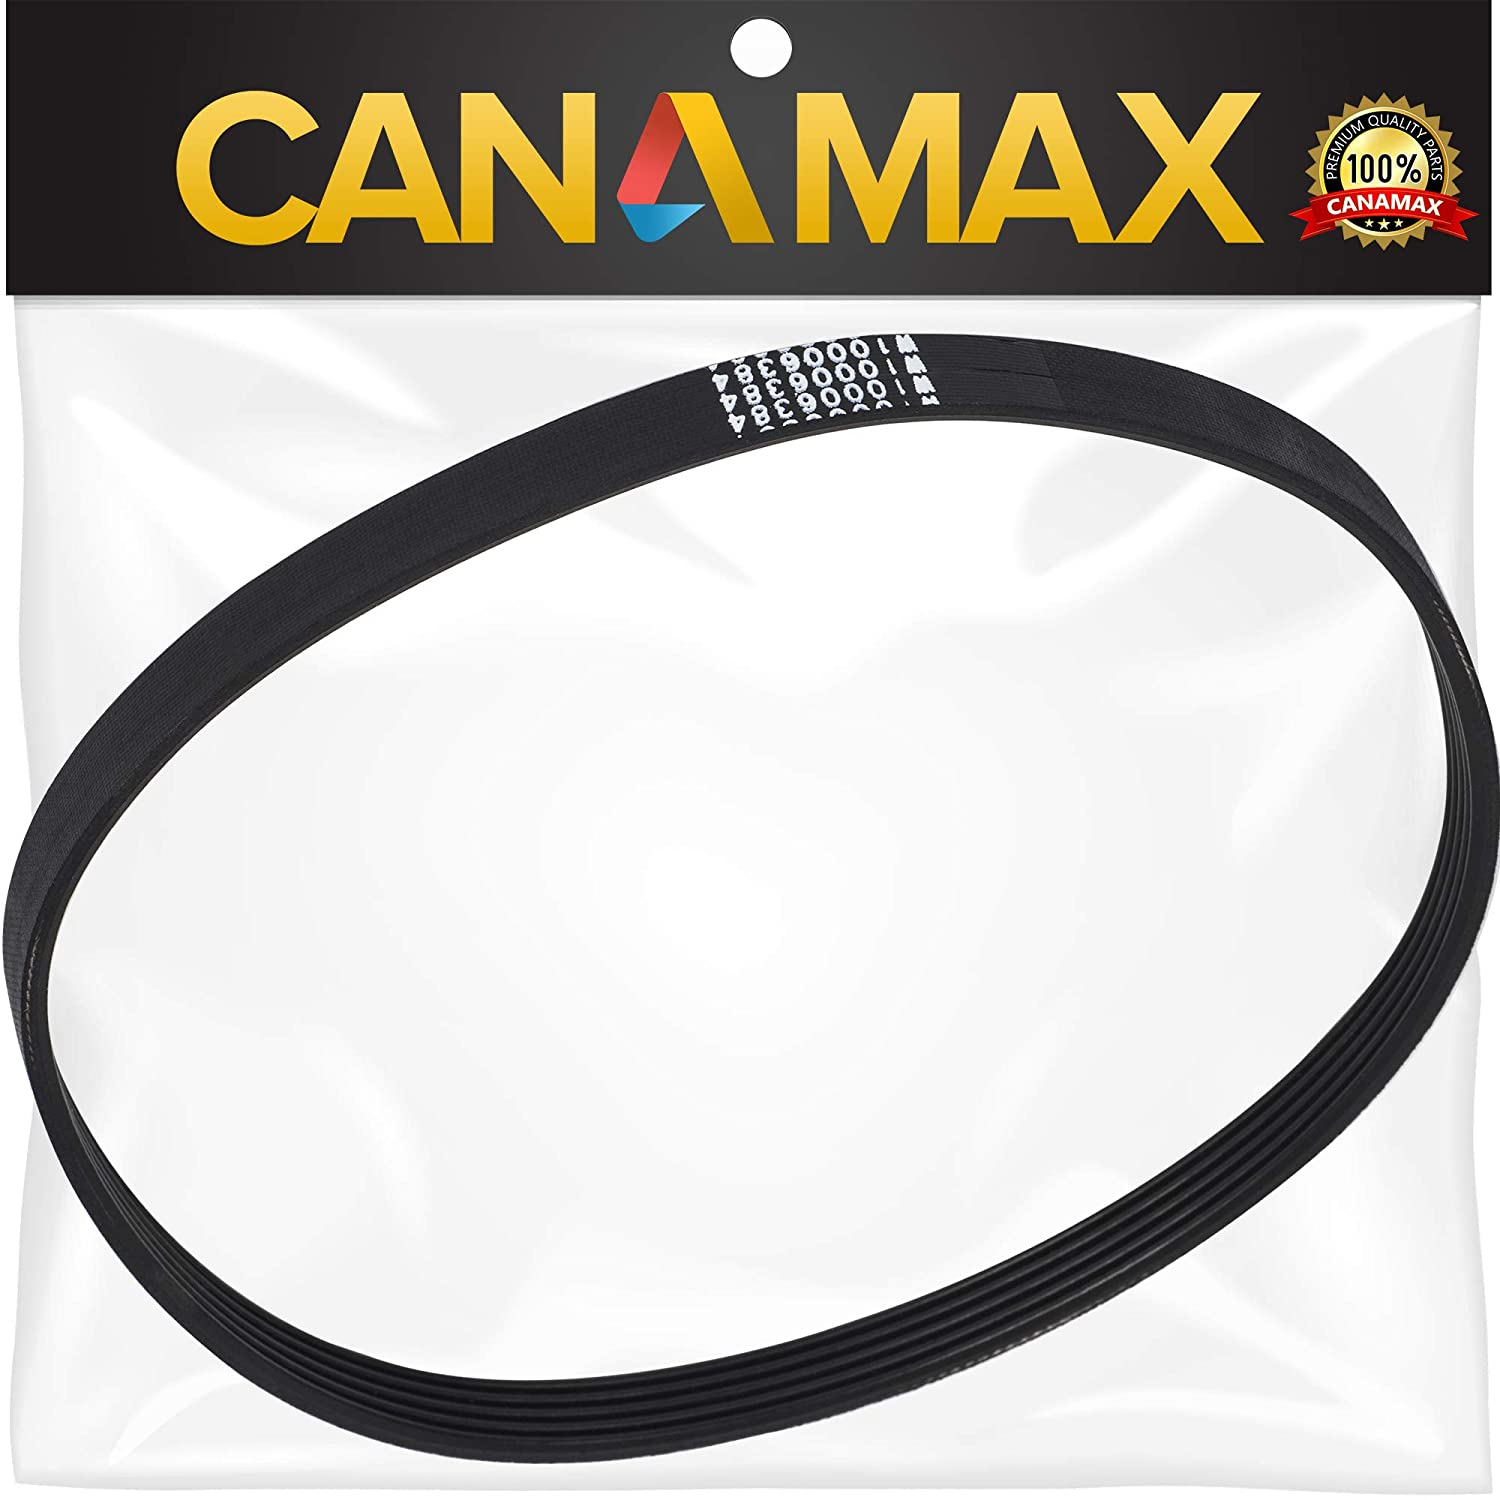 W10006384 Washer Drive Belt Premium Replacement Part by Canamax - Compatible with Whirlpool Kenmore Maytag Washers - Replaces W10006384 AP6014712 PS11747978 WPW10006384